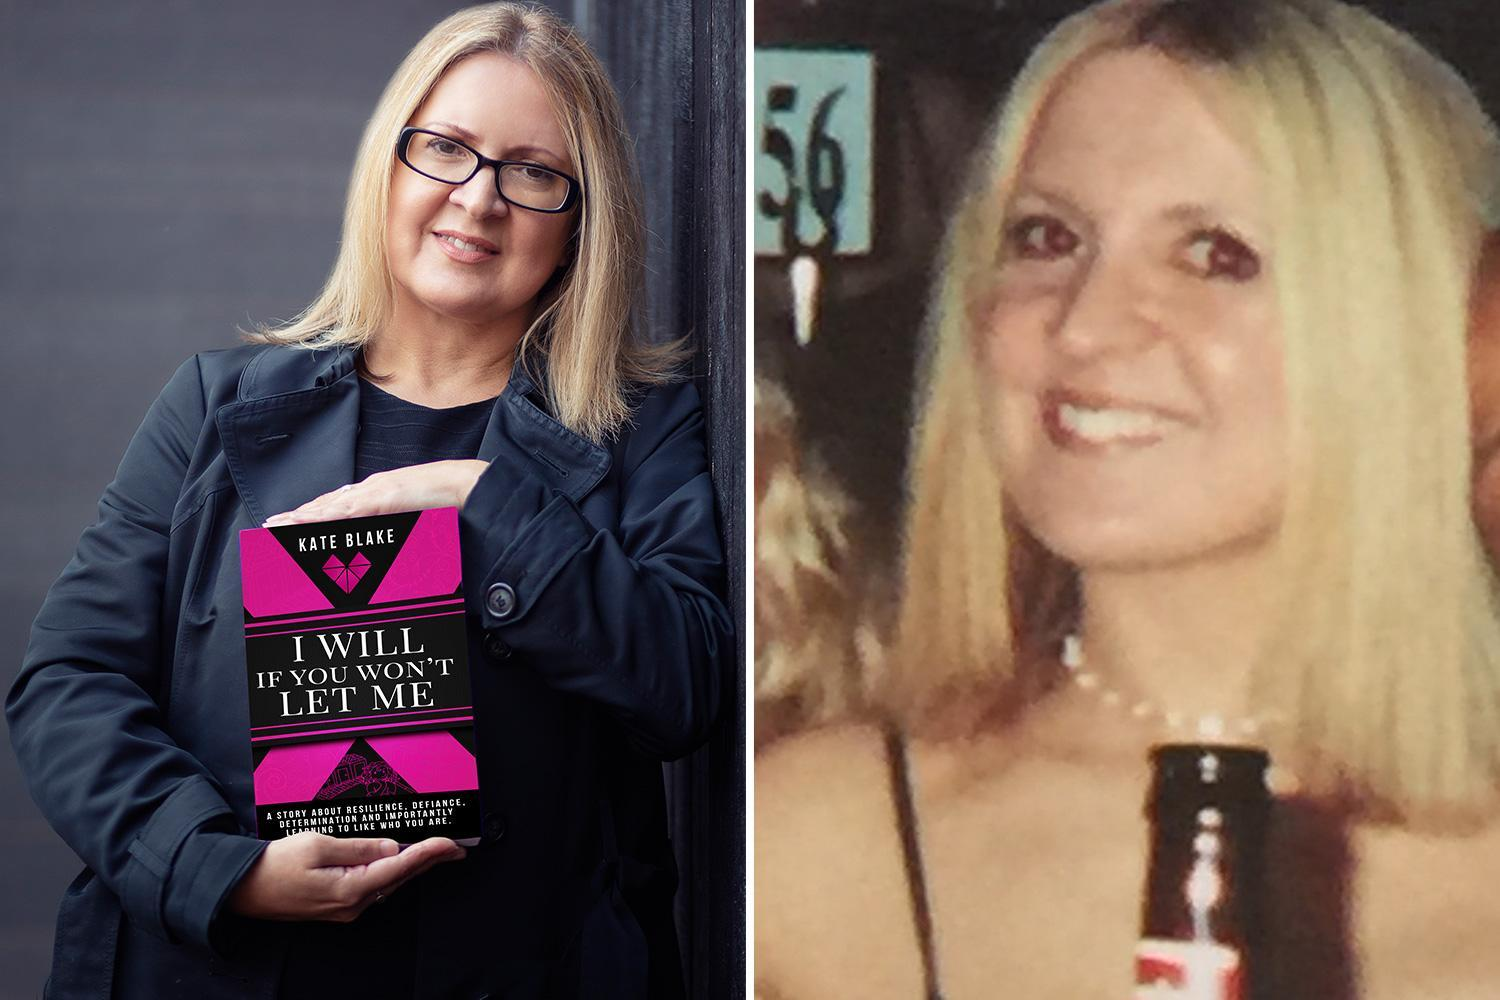 I ran an escort agency and took up pole-dancing to avoid going to prison for my debts… now I'm a best-selling author